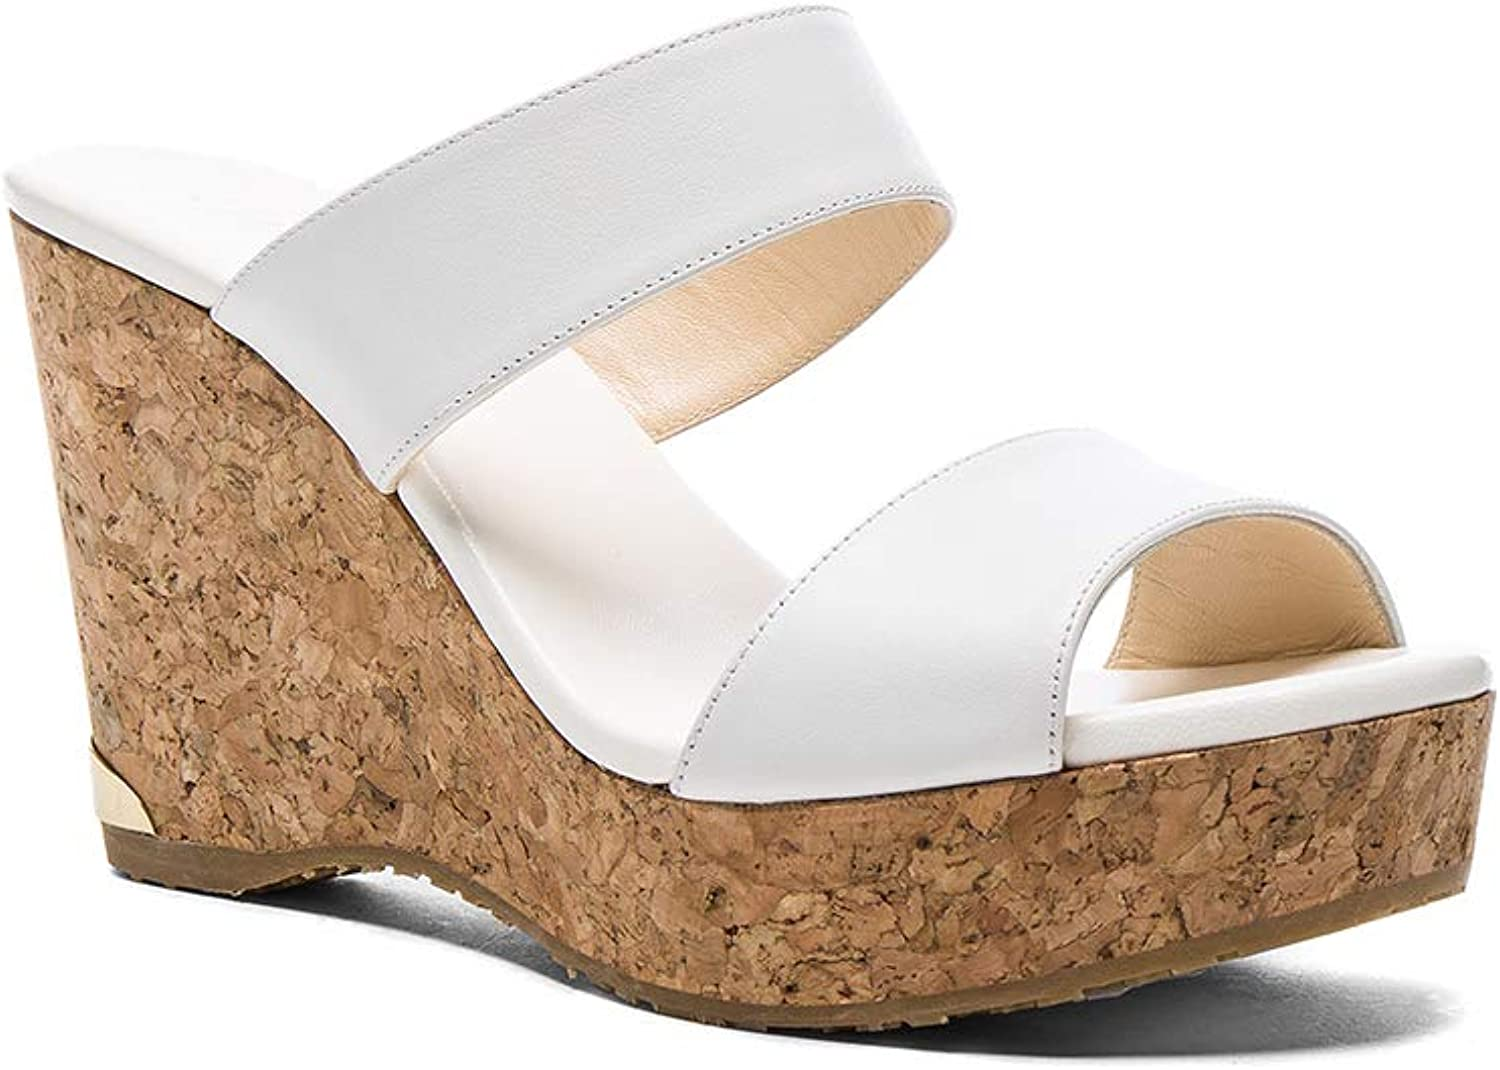 Jimmy Choo Parker Wedge, White, Size 9.5